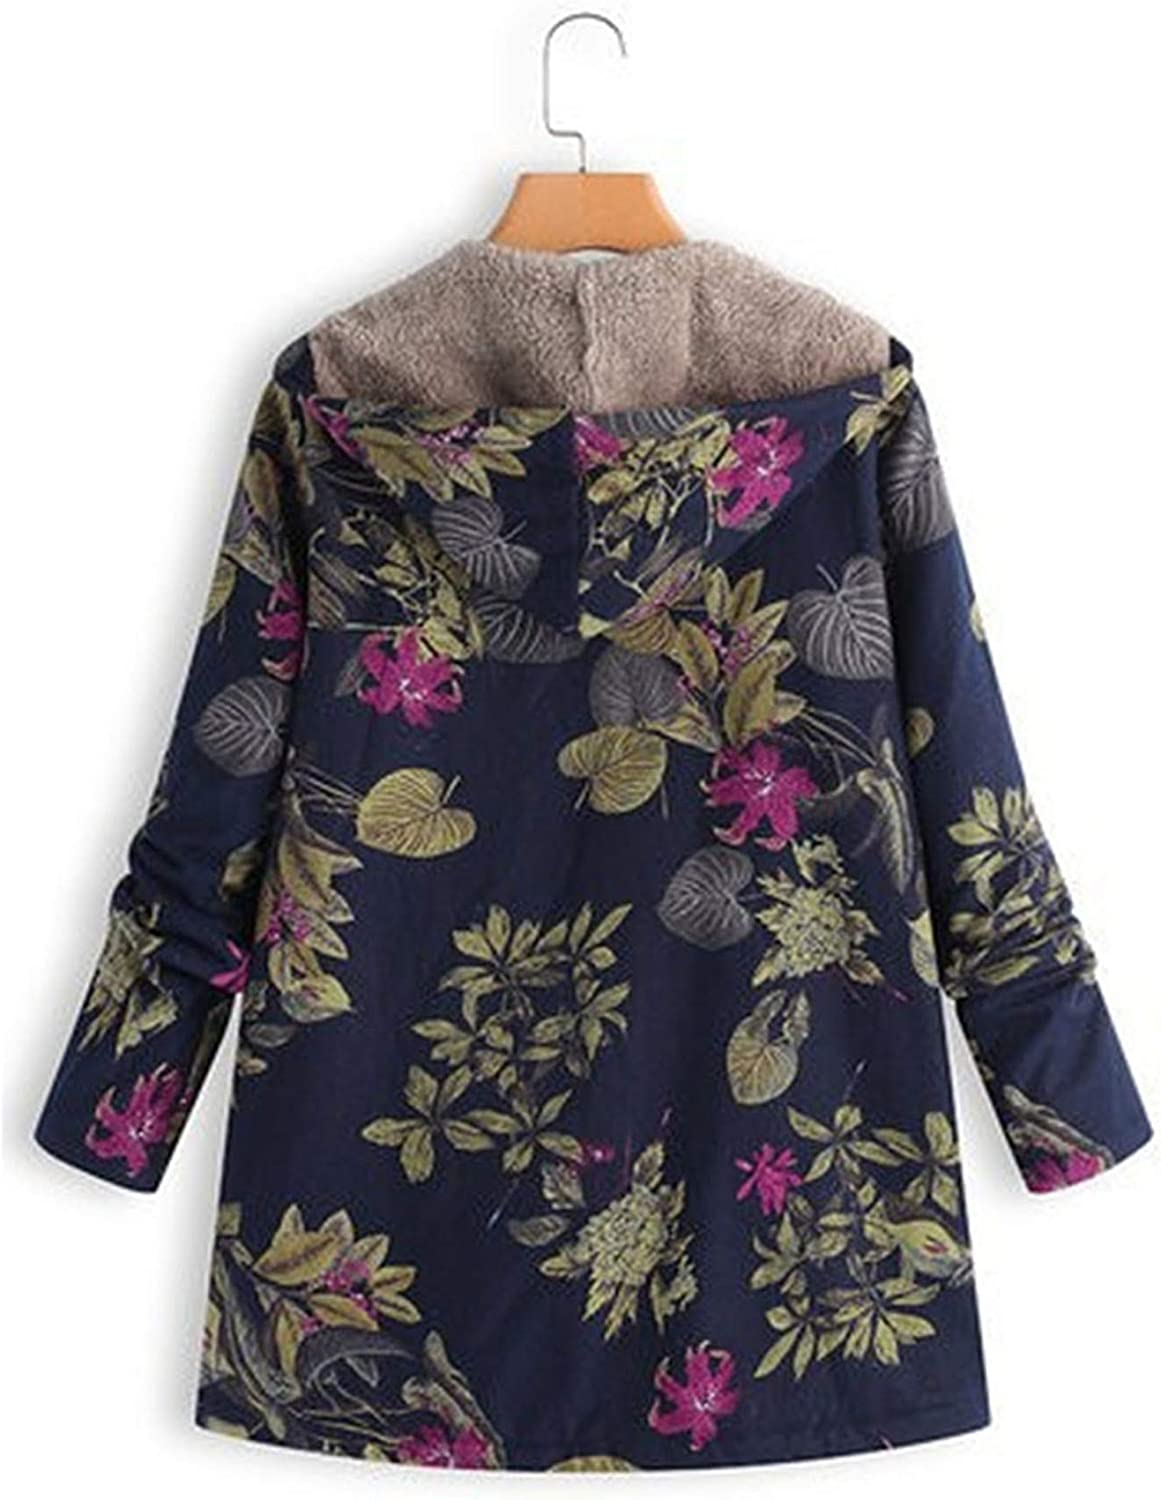 Andongnywell Everyday Floral Print Hooded Cotton Coat Floral Print Hooded Pockets Long Sleeve Vintage Jacket